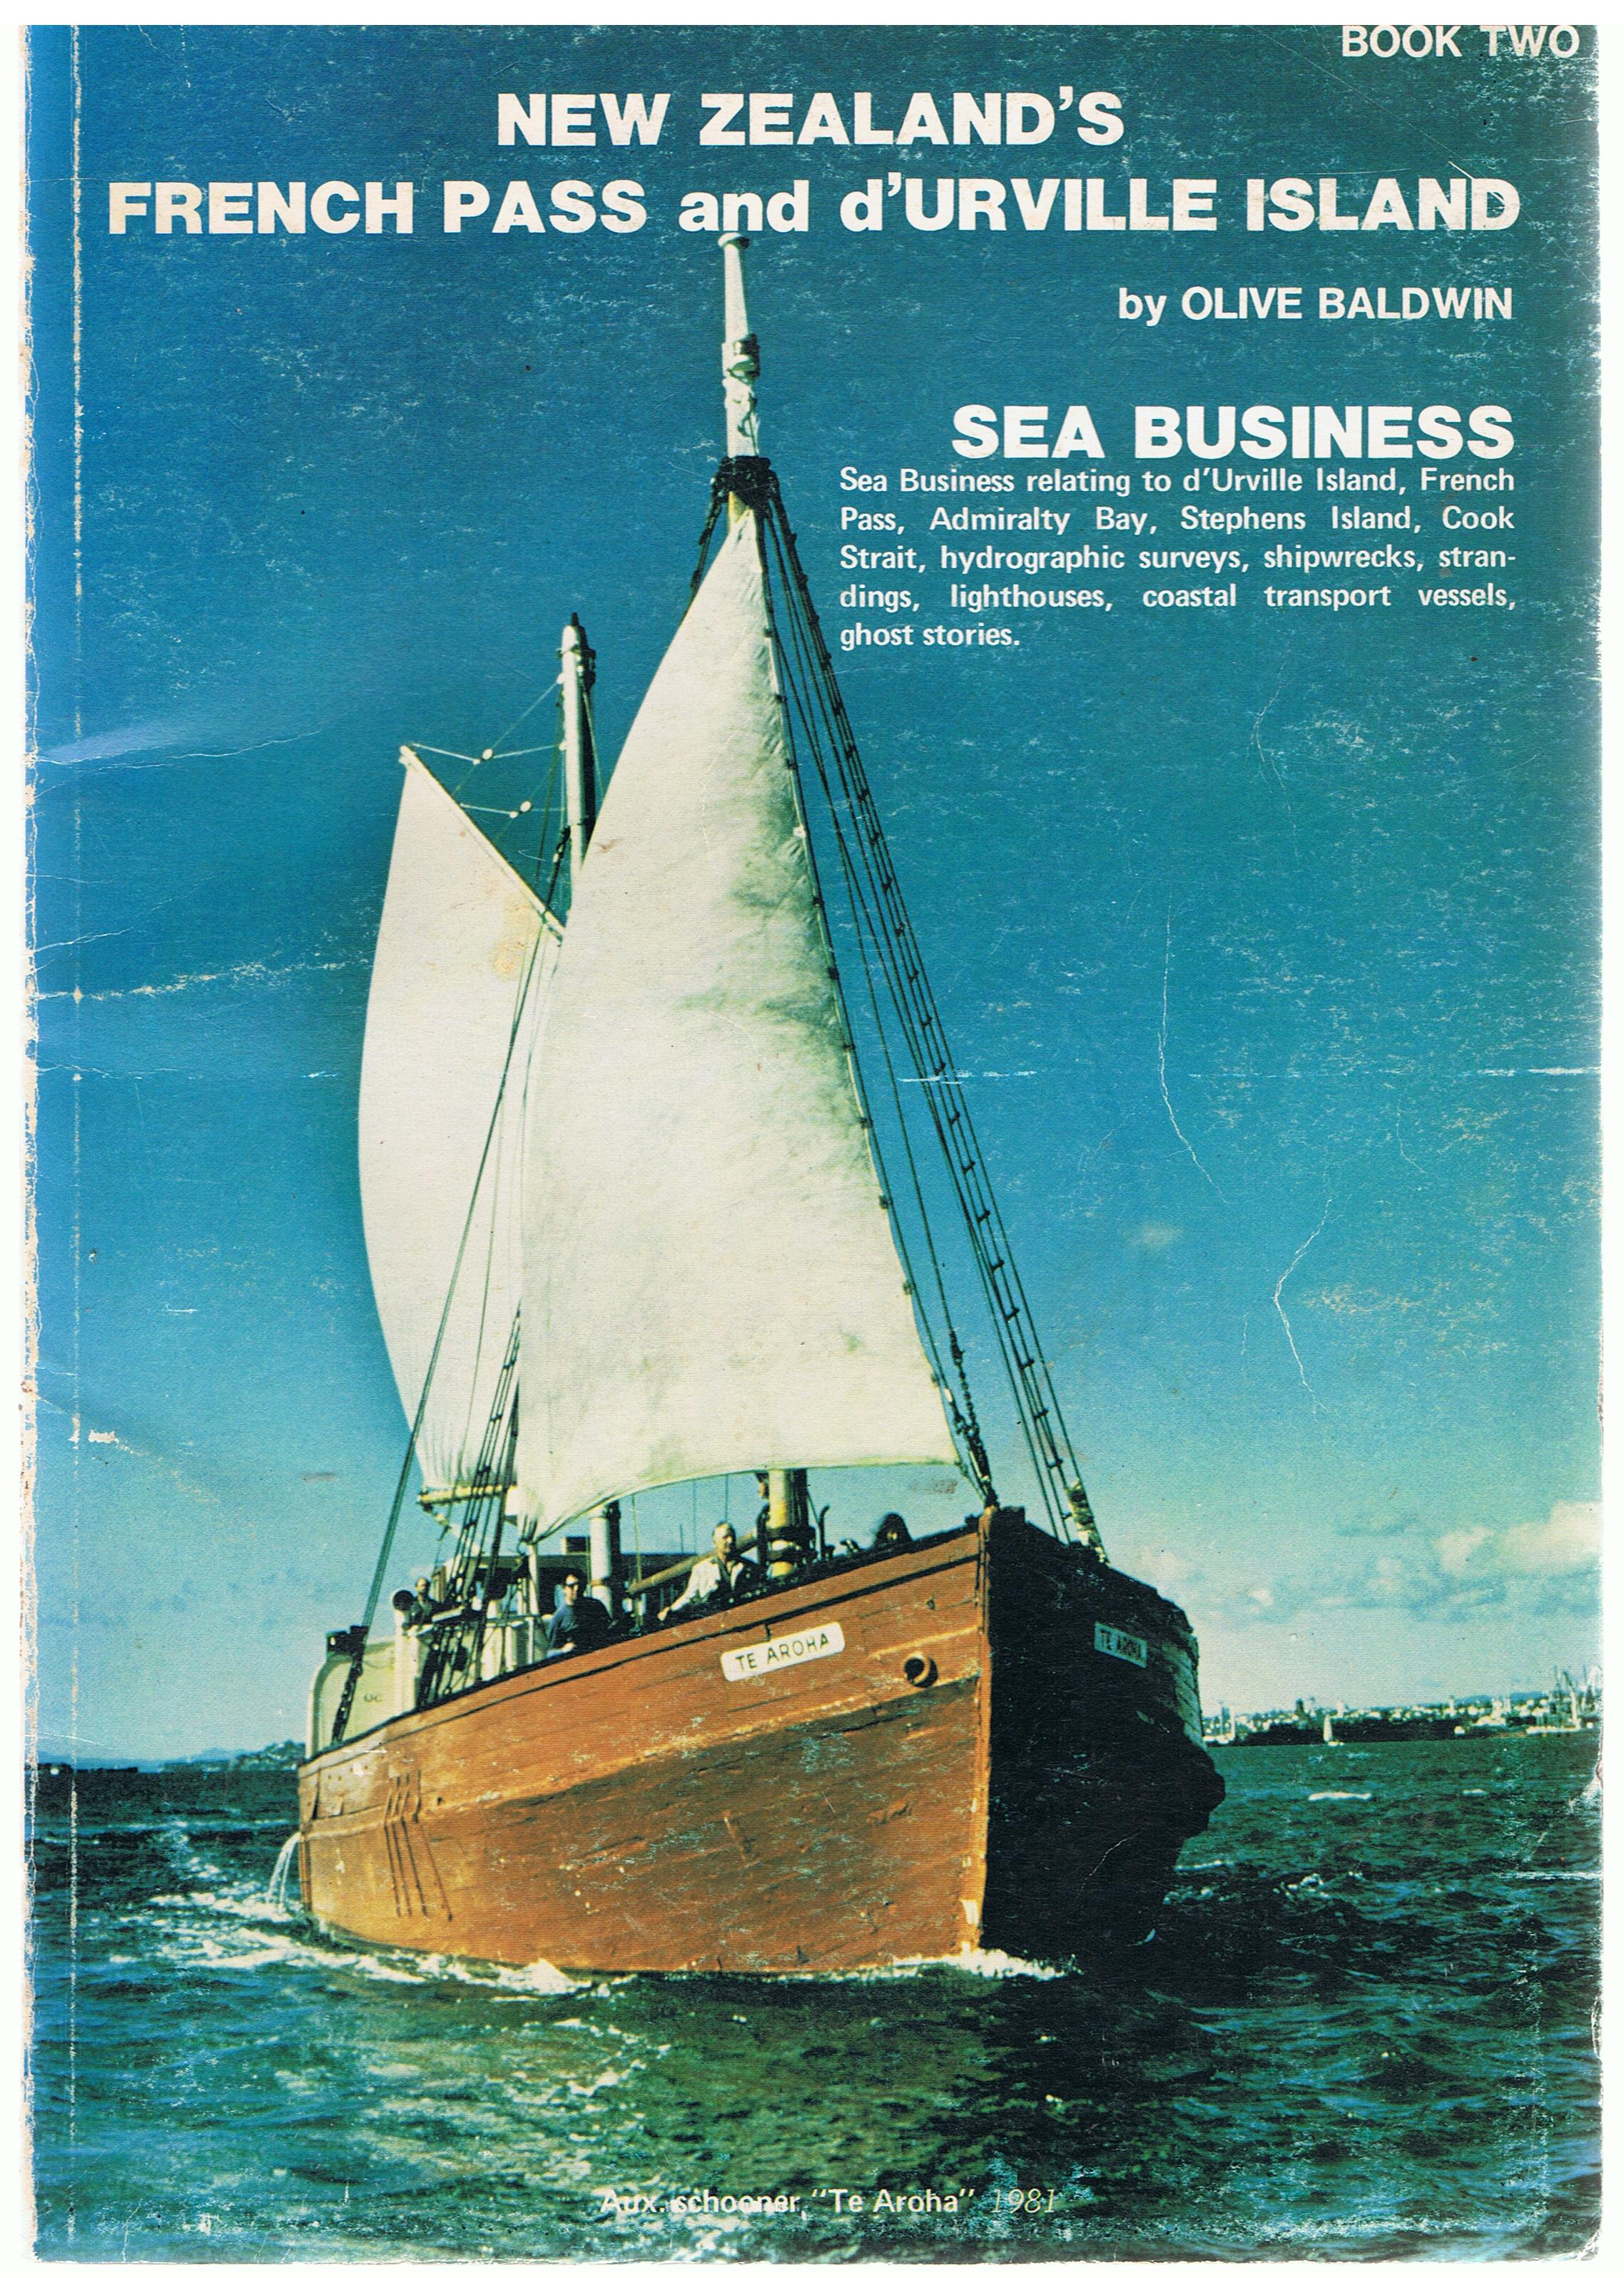 Image for New Zealand's French Pass and d'Urville Island. Book Two Sea Business relating to d'Urville Island, French Pass, Admiralty bay, Stephens Island, Cook Strait, hydrographic surveys, shipwrecks, strandings, coastal transport vessels, ghost stories.